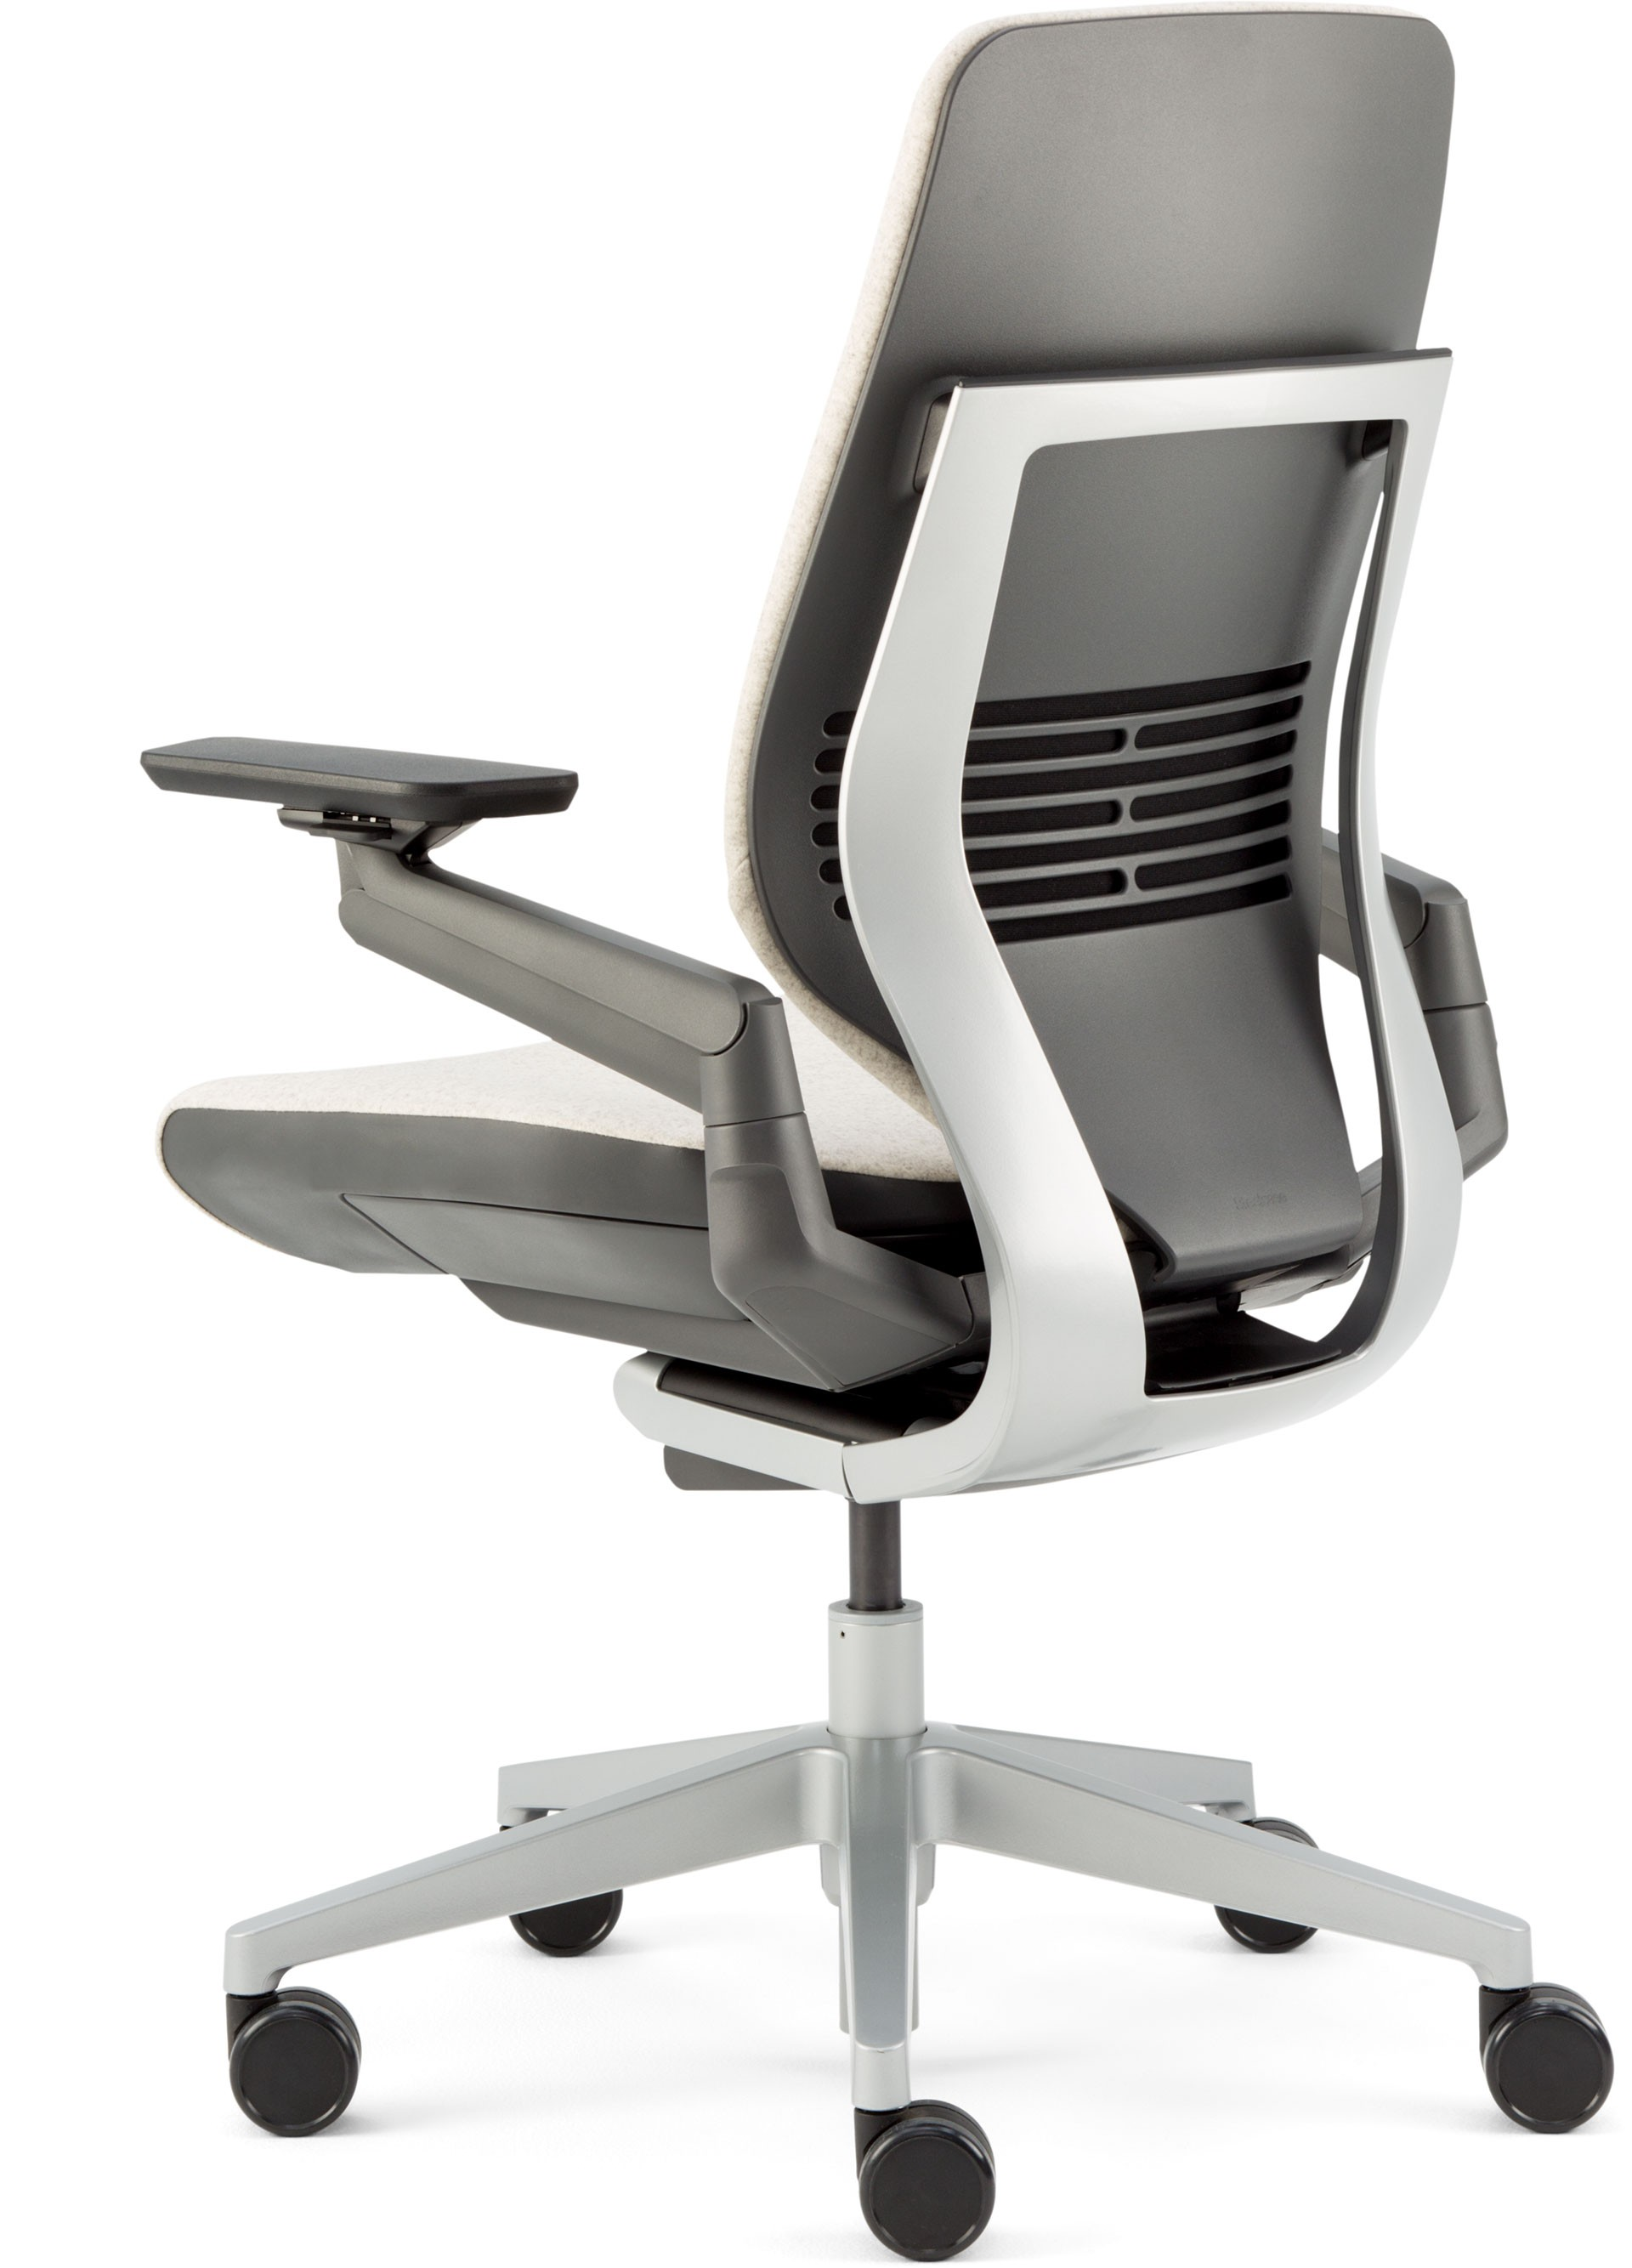 office chair back support with Steelcase Gesture Office Chair on JFKWHP 1962 08 09 D also Office Chair Mesh 2 moreover Swoon Lounge Chair additionally Regulations Regarding Fire Codes Osha For Exit Clearance For Multiple Employees also 3486777.